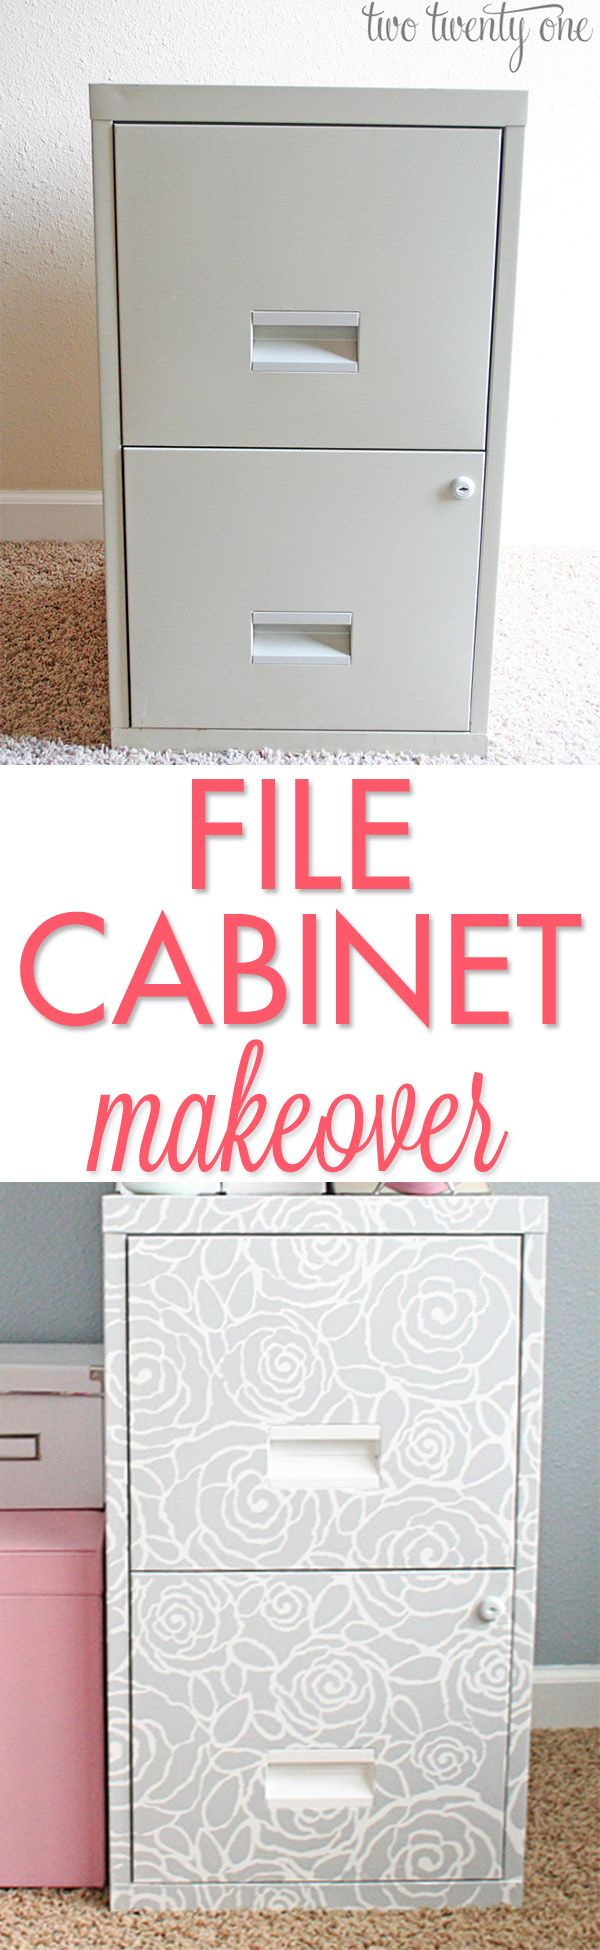 Drab to fab! File cabinet makeover! Pinned by Suzanna Kaye Home Organizer For more organizing tips, articles and ideas visit www.ASpaceThatWorks.com/blog or follow at www.facebook.com/SuzannaHomeOrganizer #organize #home